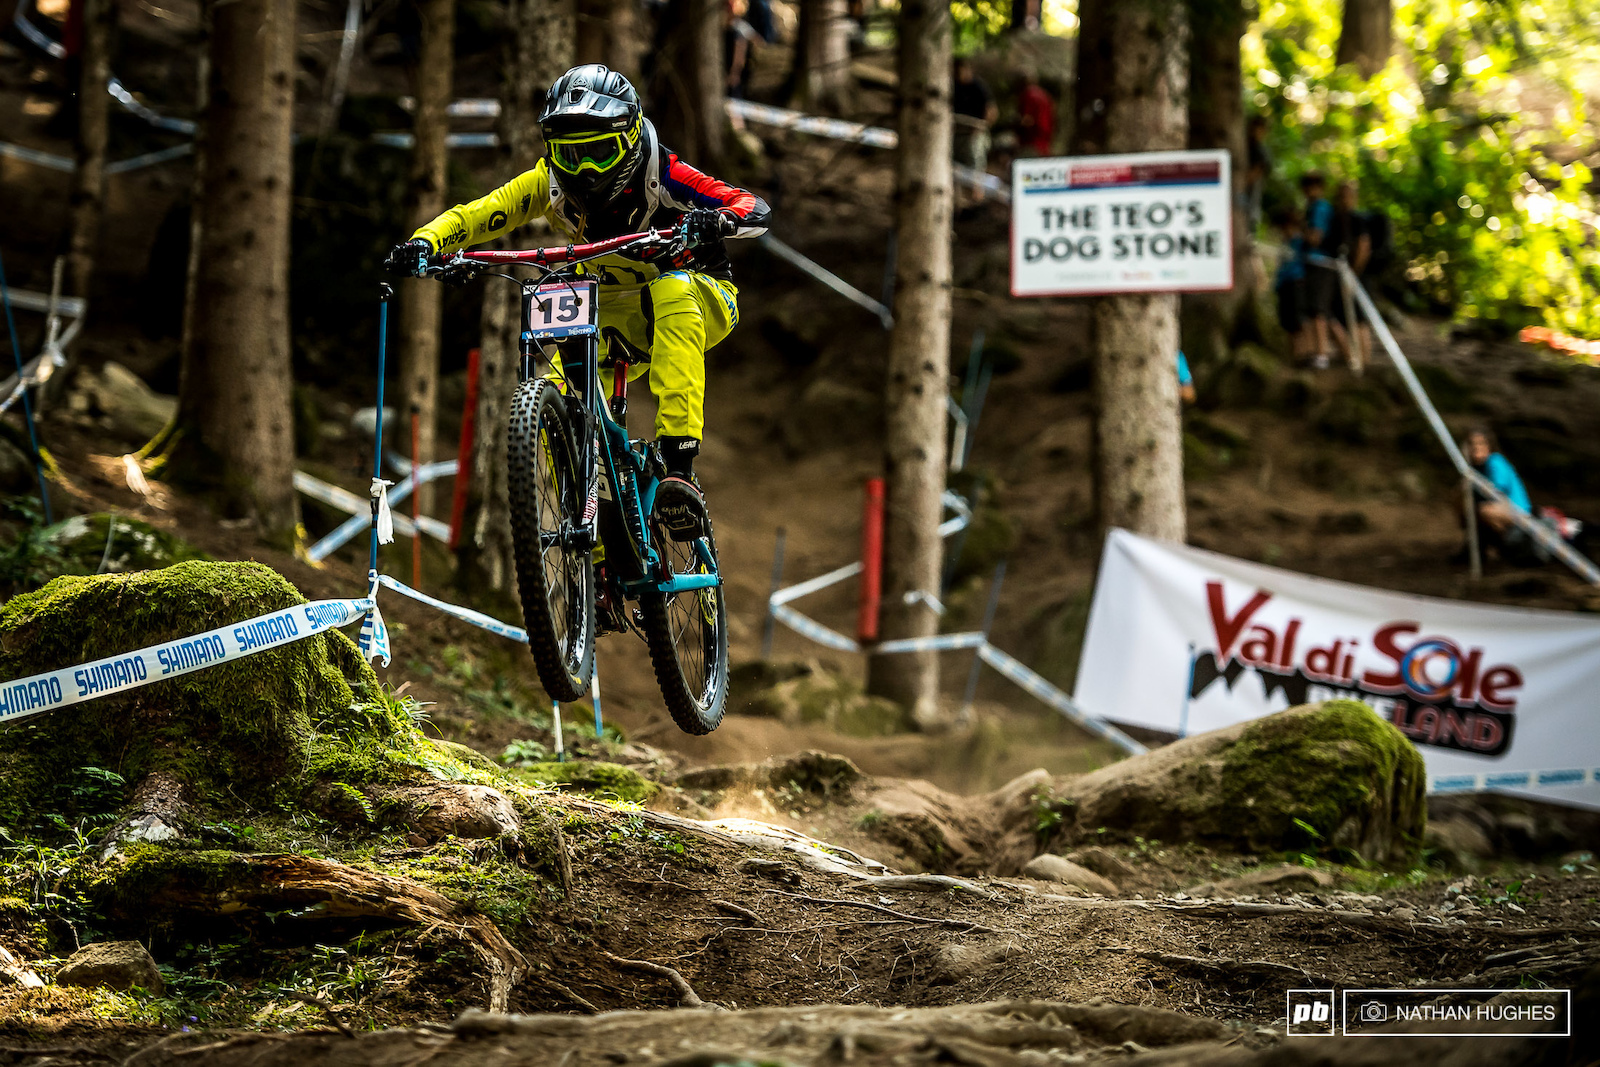 Monika Hrastnik doing Slovenia proud and sending it into a podium position. Can she hold it down again when the pressure s on